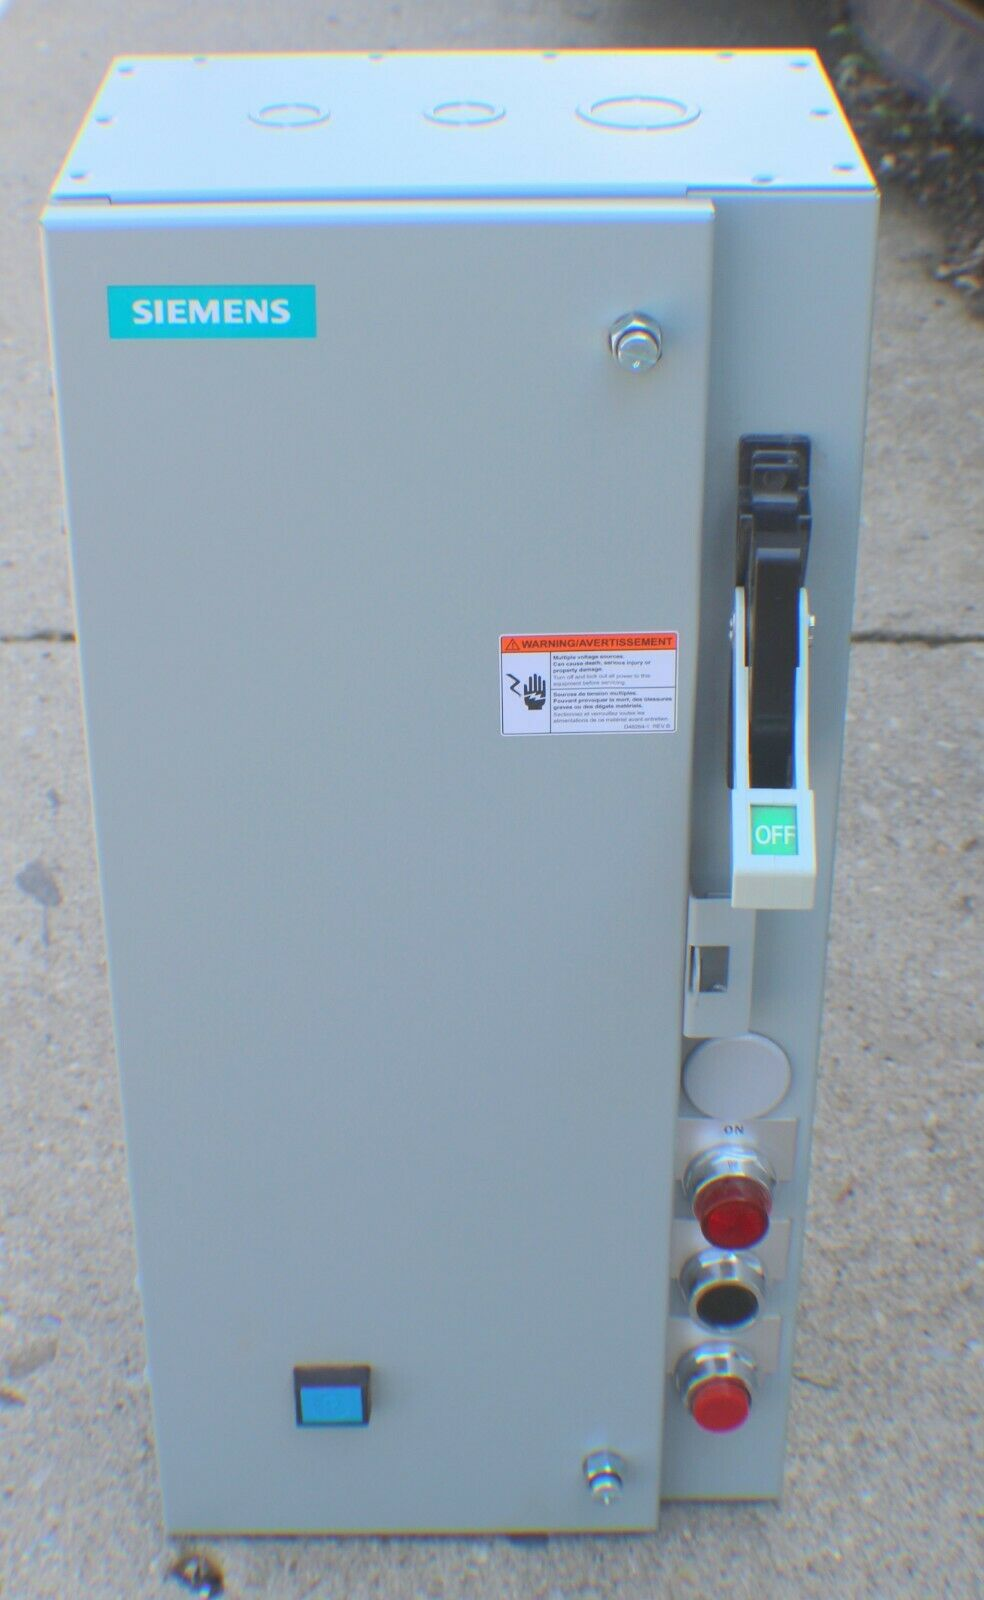 100 Disc Siemens 49EC17CB242008R FVNR Combination Starter Kit Amp Rating 2-12 Used With Disconnect Devices NEMA 1 General Purpose 3 Starter Size